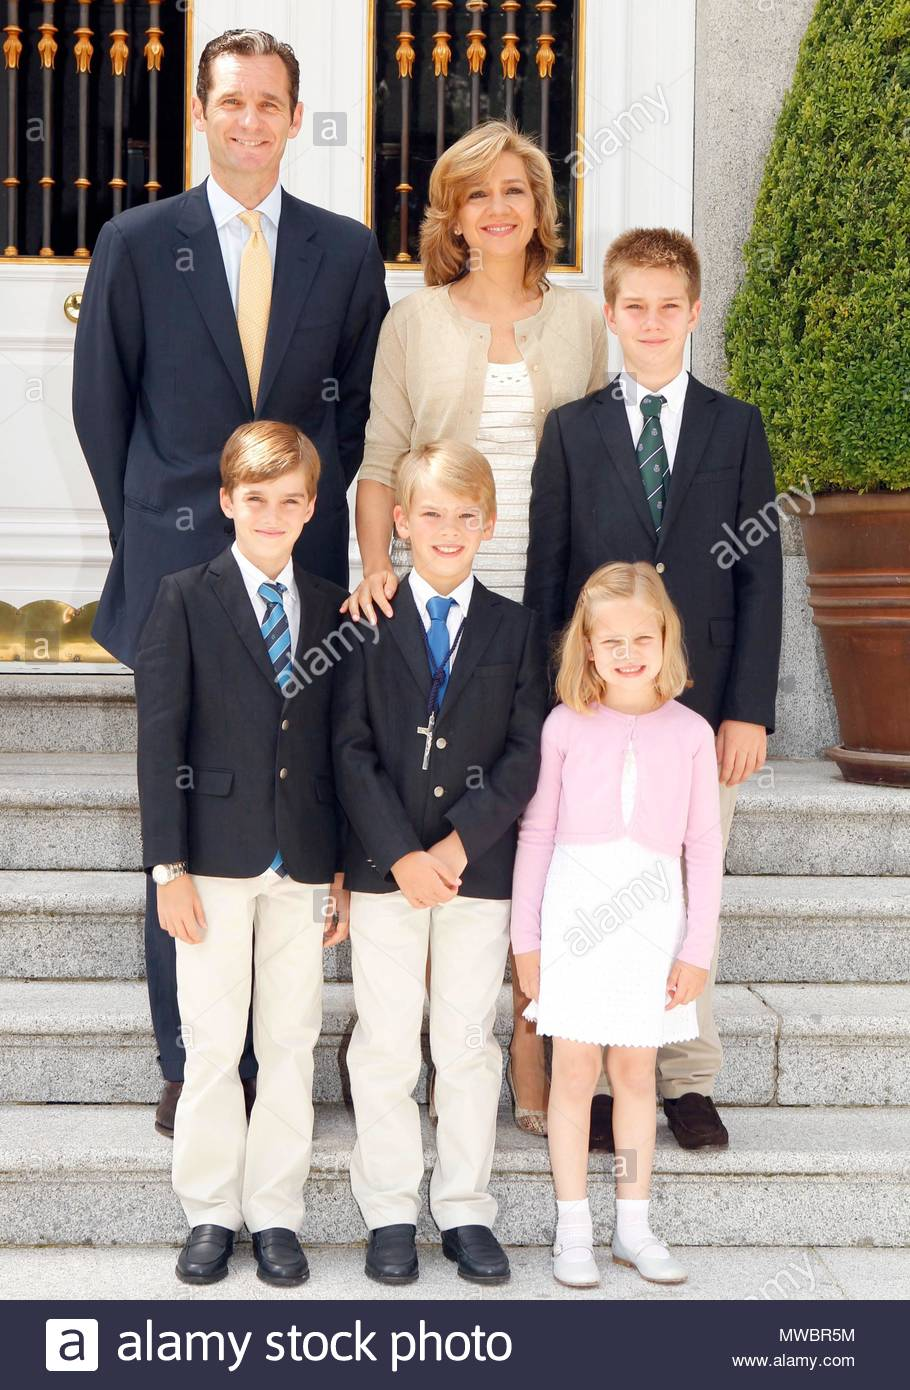 princess cristinas christmas card the spanish royal family has sent christmas cards 2011 despite inaki urdangarin being separated from the offcial acts - Royal Family Christmas Card